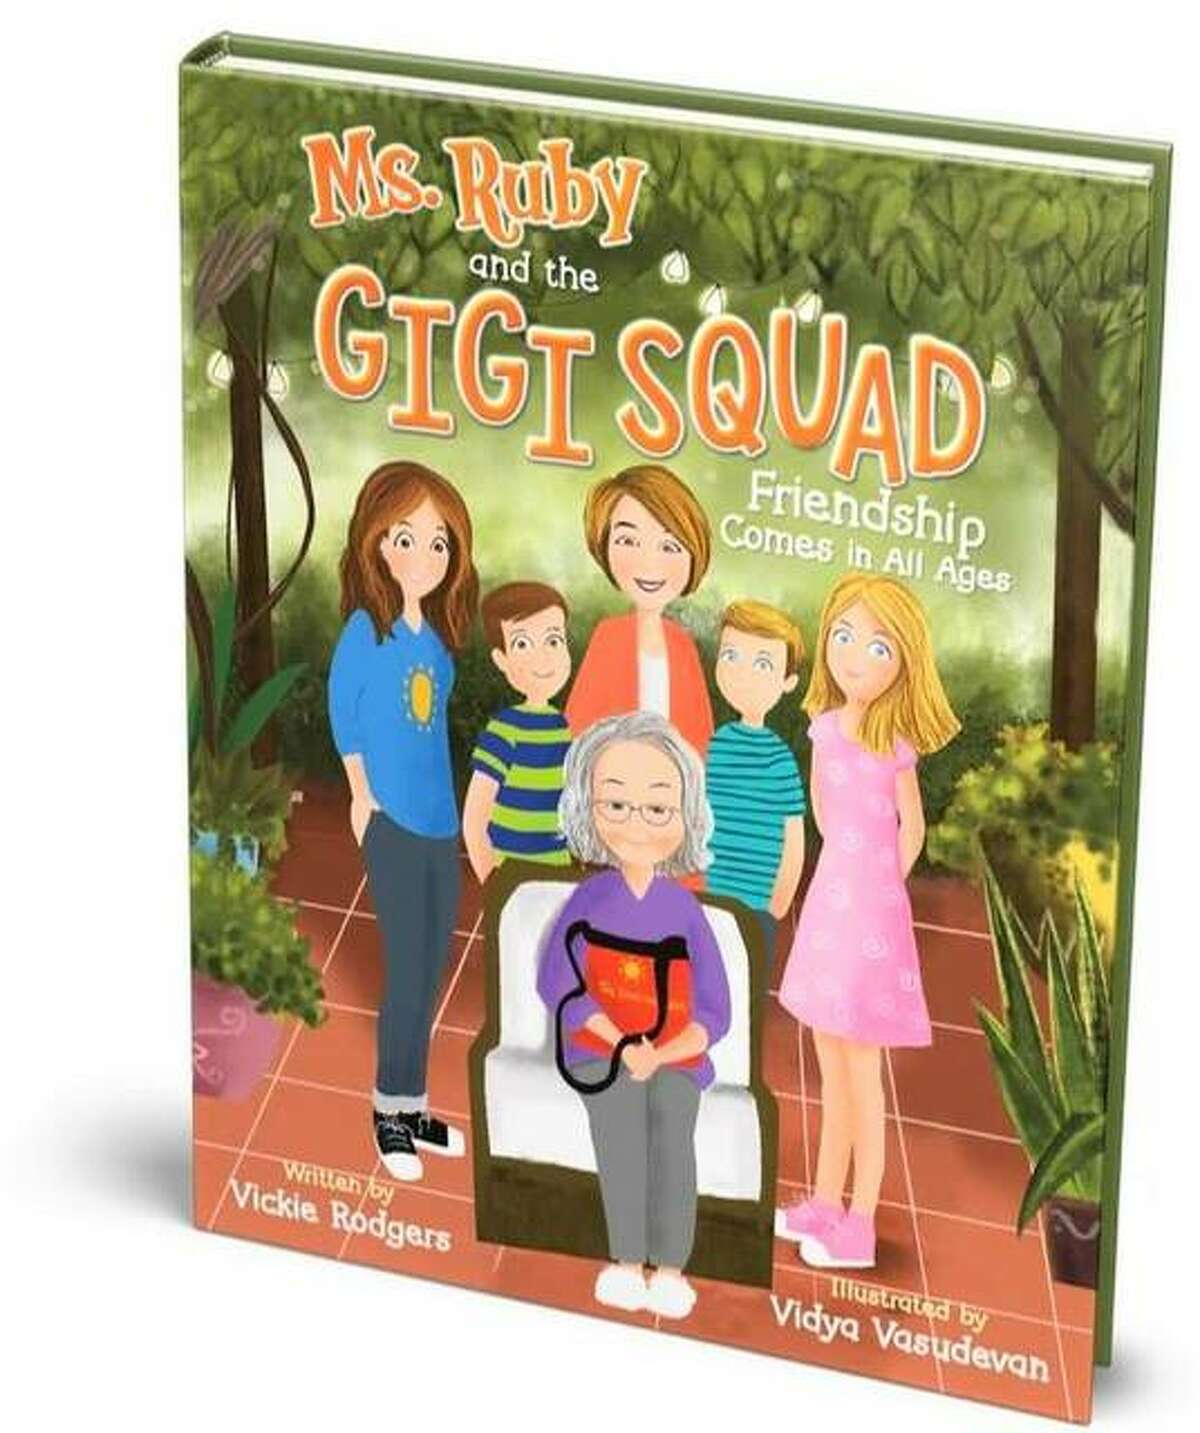 """The cover of """"Ms. Ruby and the Gigi Squad: Friendships Come in All Ages,"""" by illustrator Vidya Vasudevan, reproduced from a photograph by Linda Snyder. The book is available to pre-order now, at www.vickierodgers.com, with delivery by mid-November, in time for Christmas. Sales launch live on Amazon Nov. 8."""